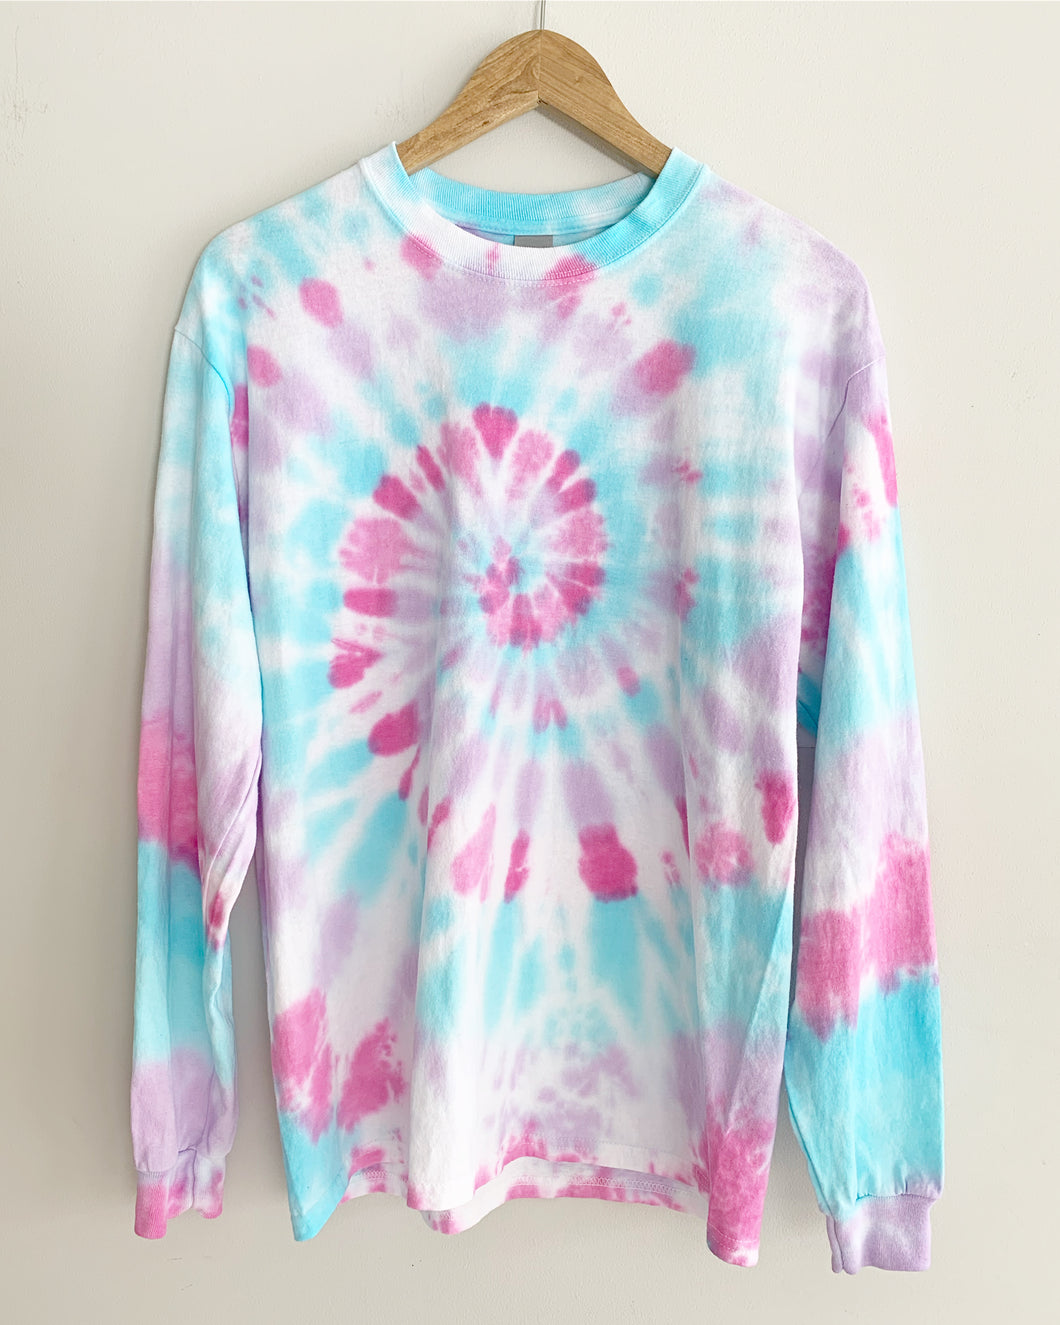 Cotton Candy Spiral Tie Dye Long Sleeve Tee